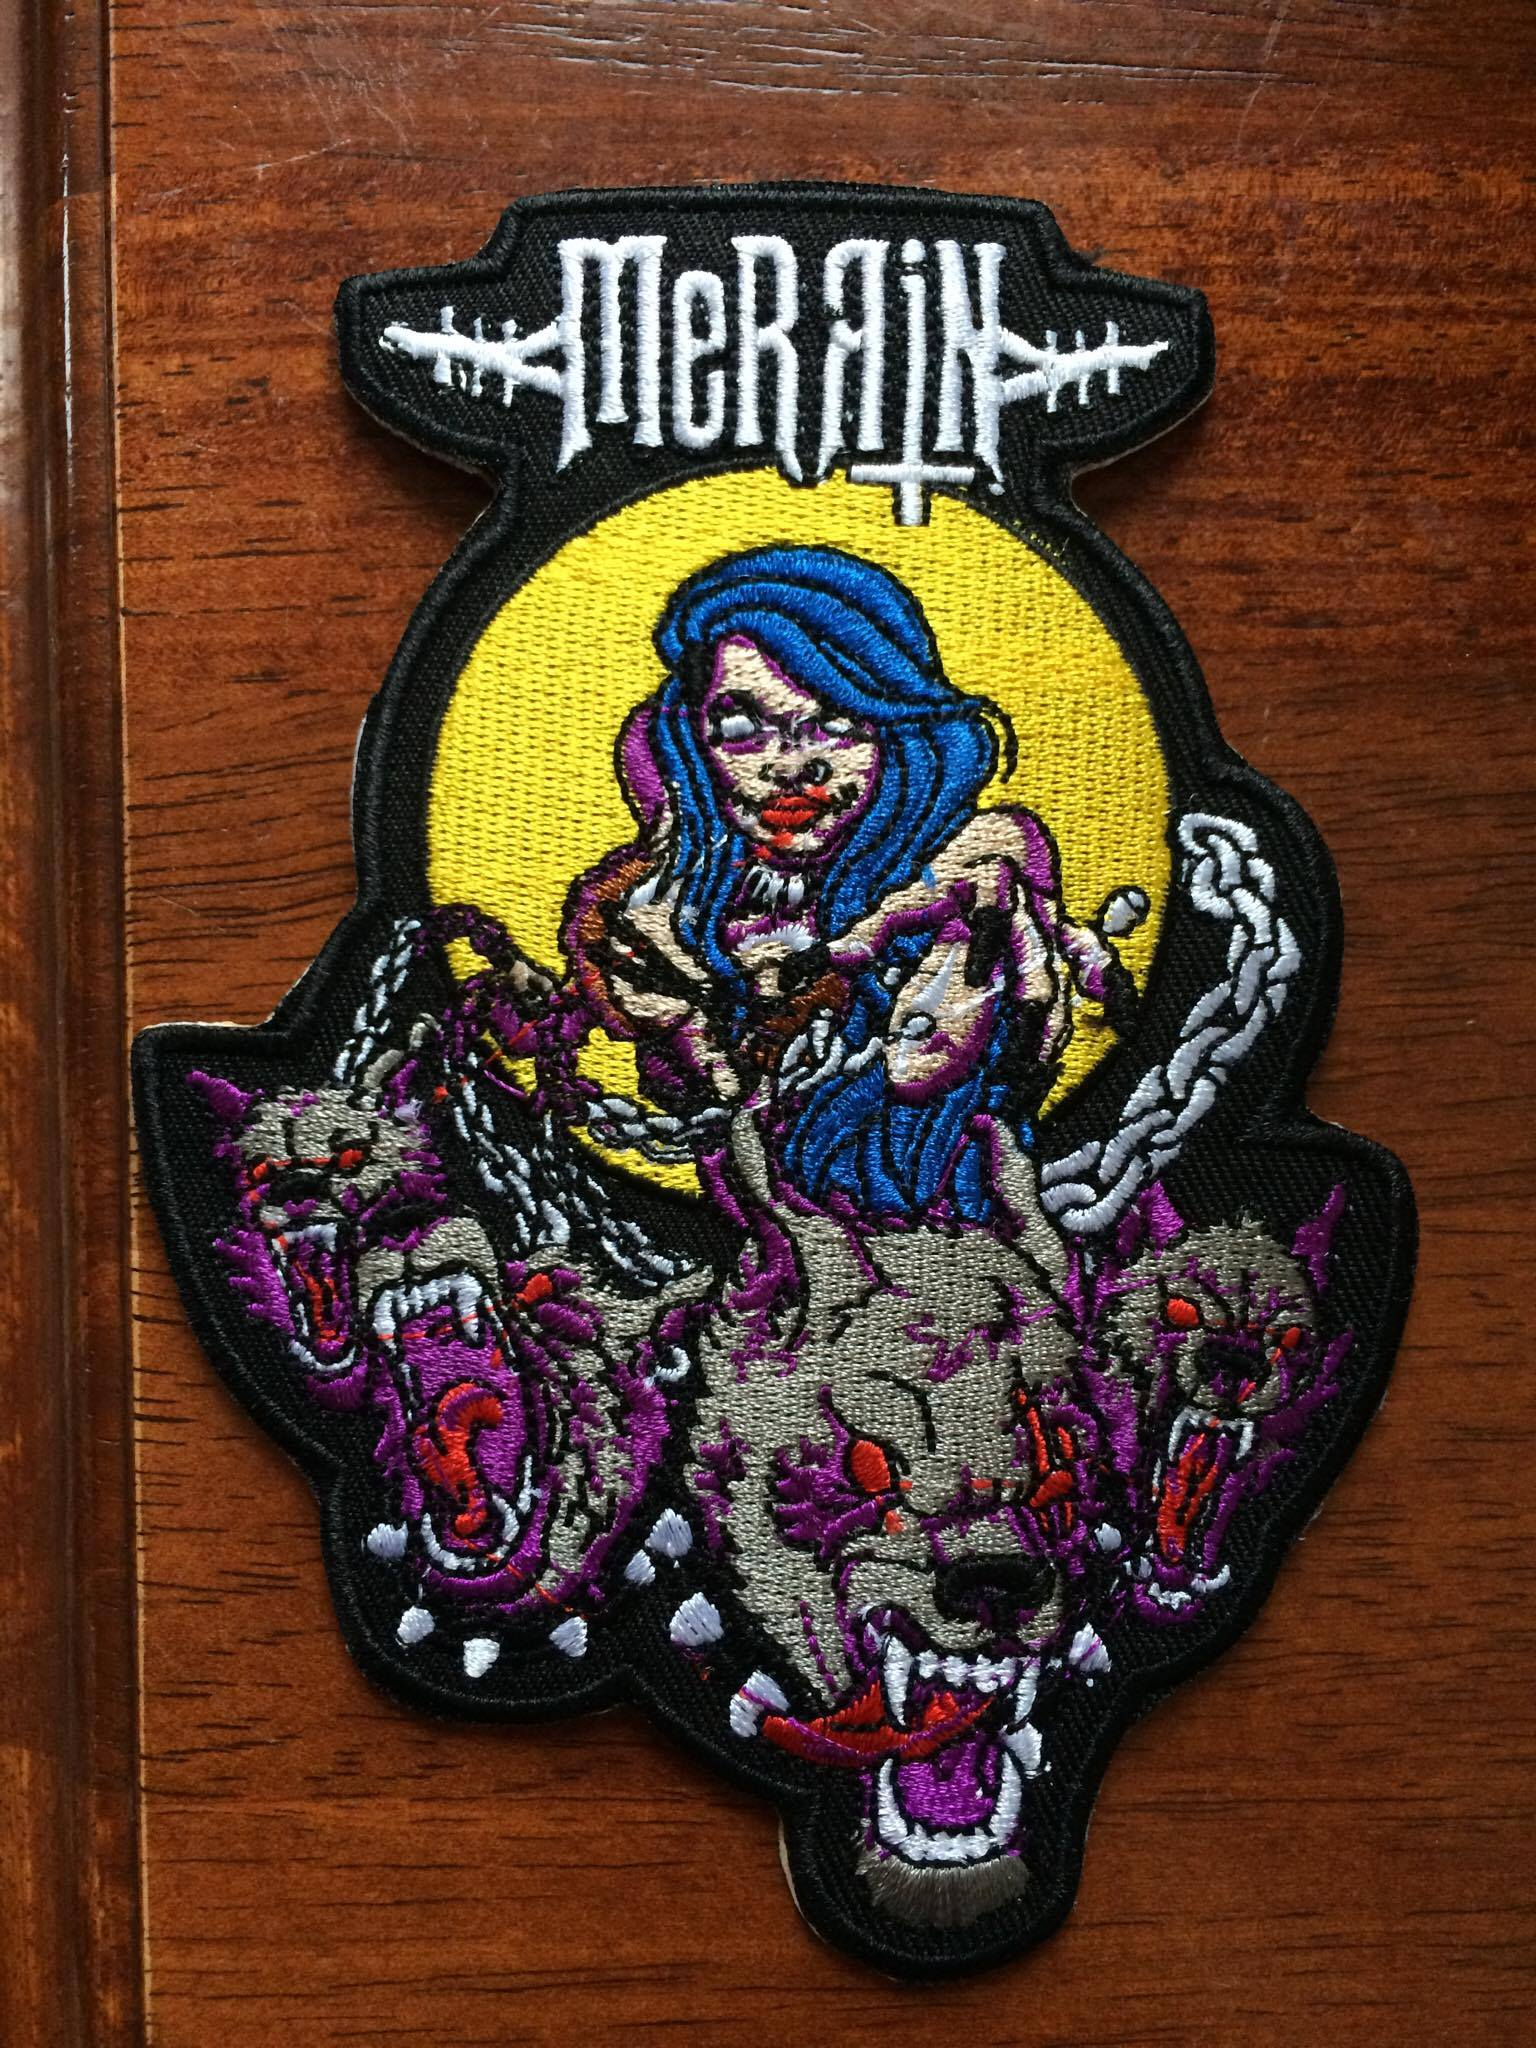 Merrin Patches